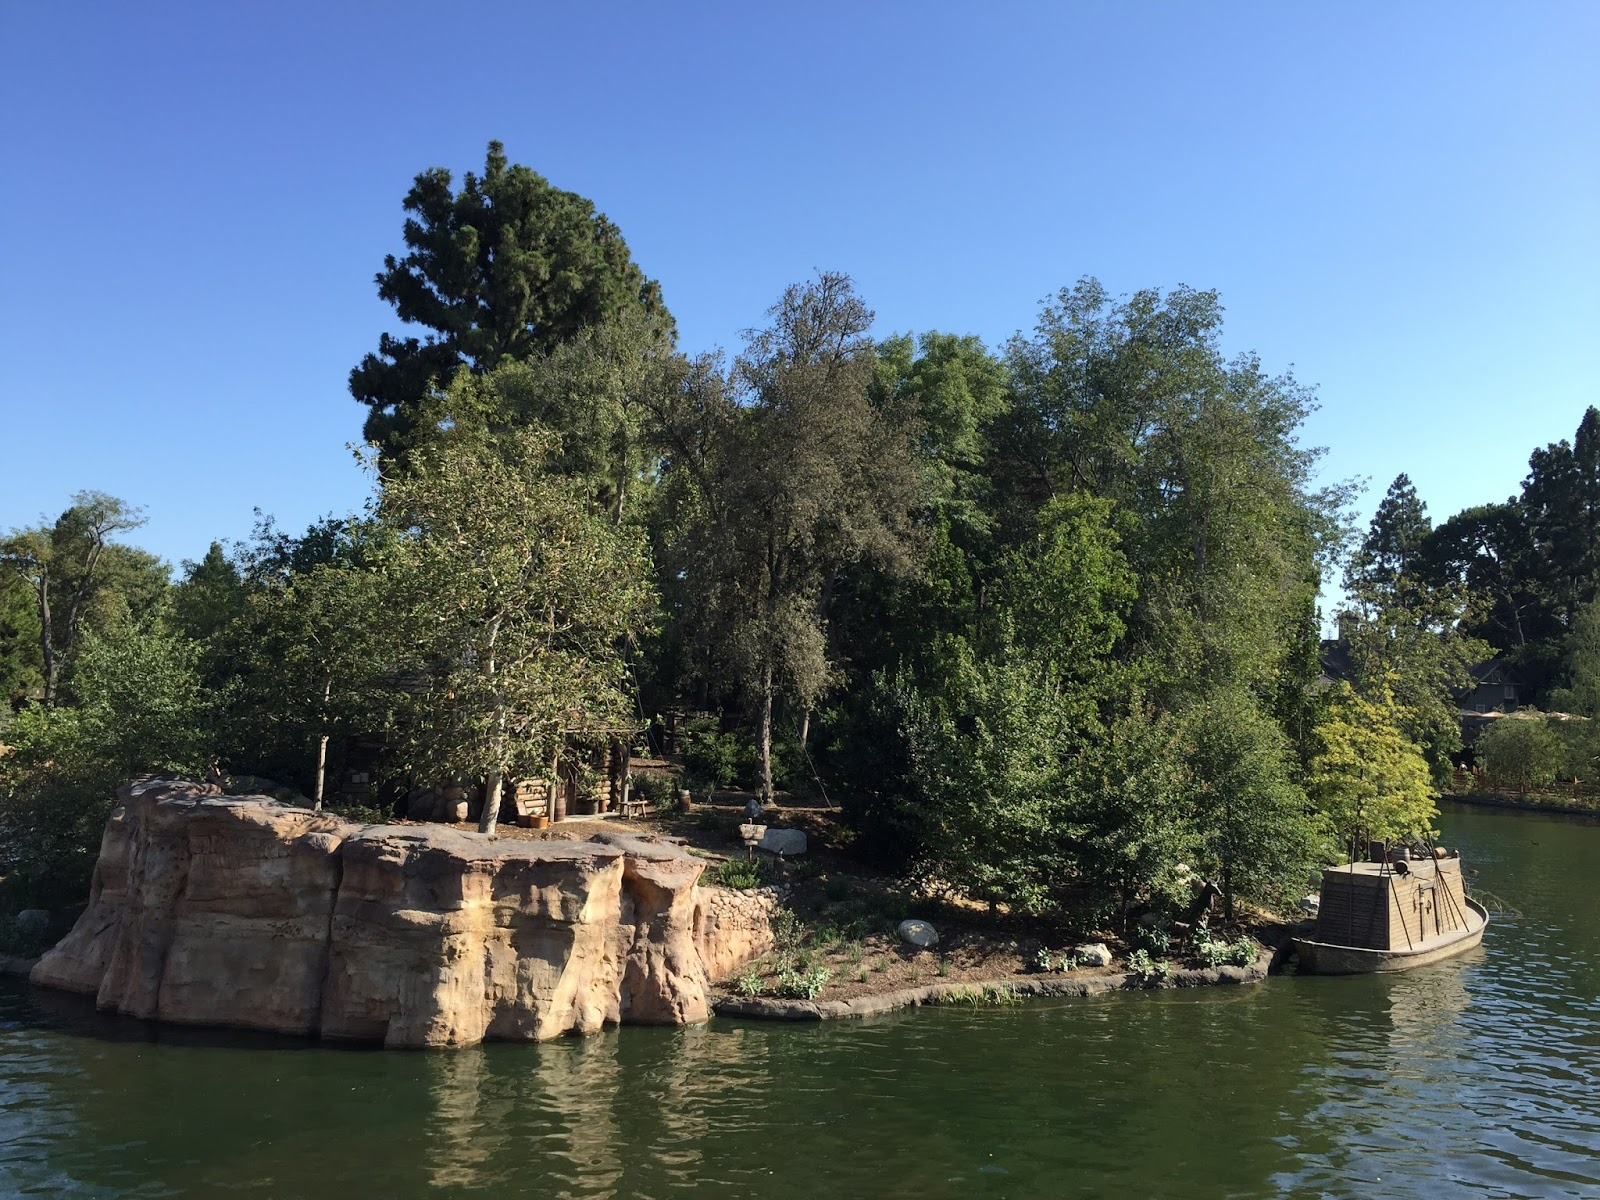 Laura's Miscellaneous Musings: Today at Disneyland: Return of the Classics